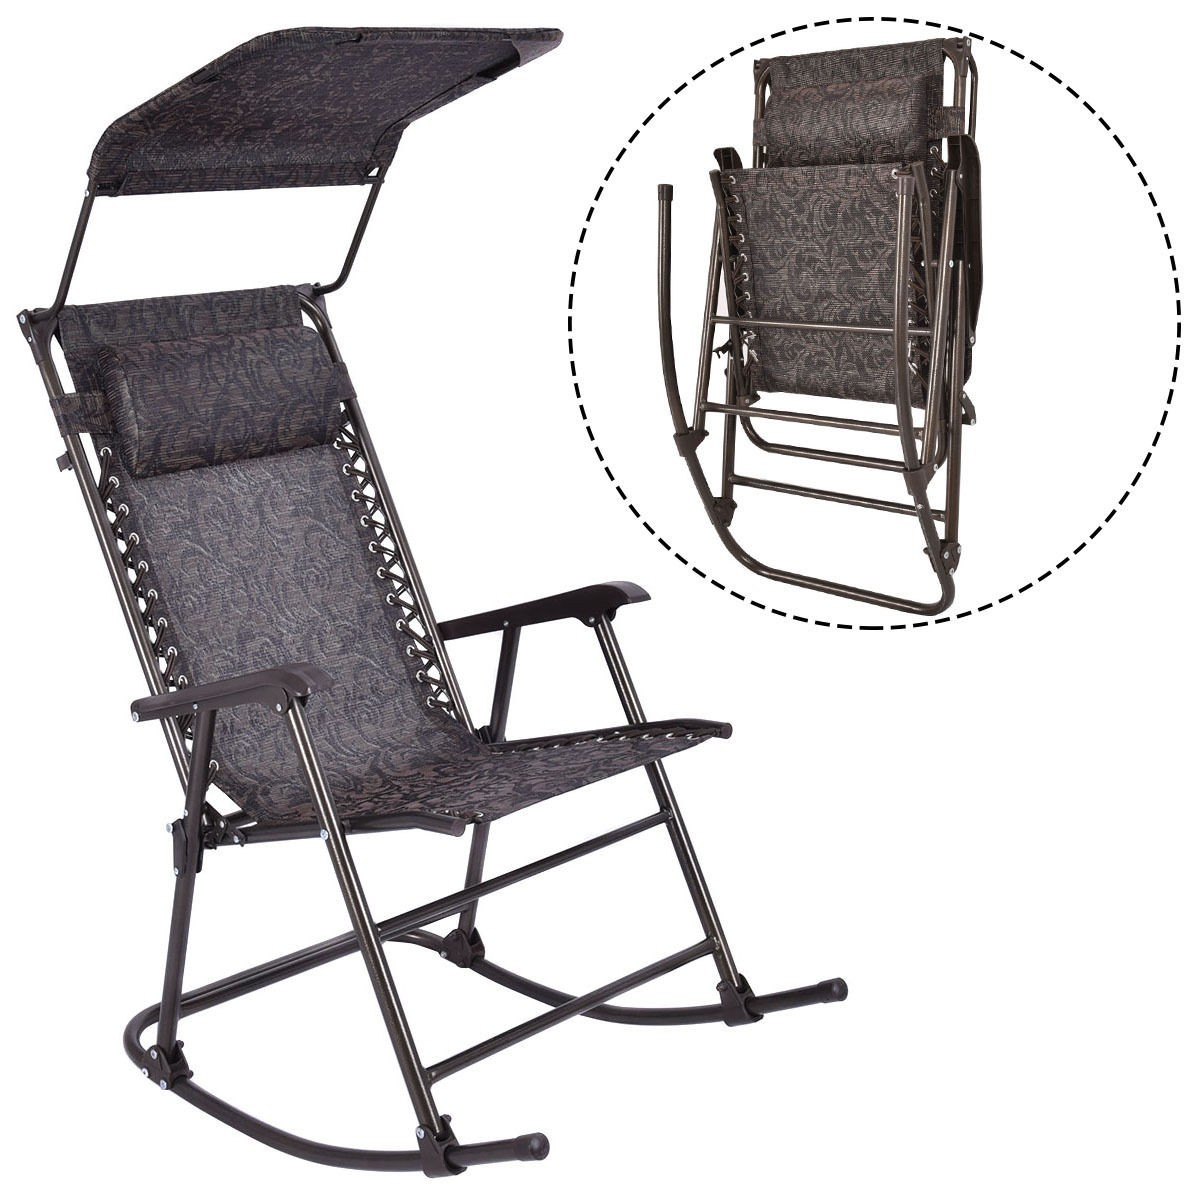 Canopies And Chairs : Outdoor home daddy folding rocking chair rocker patio